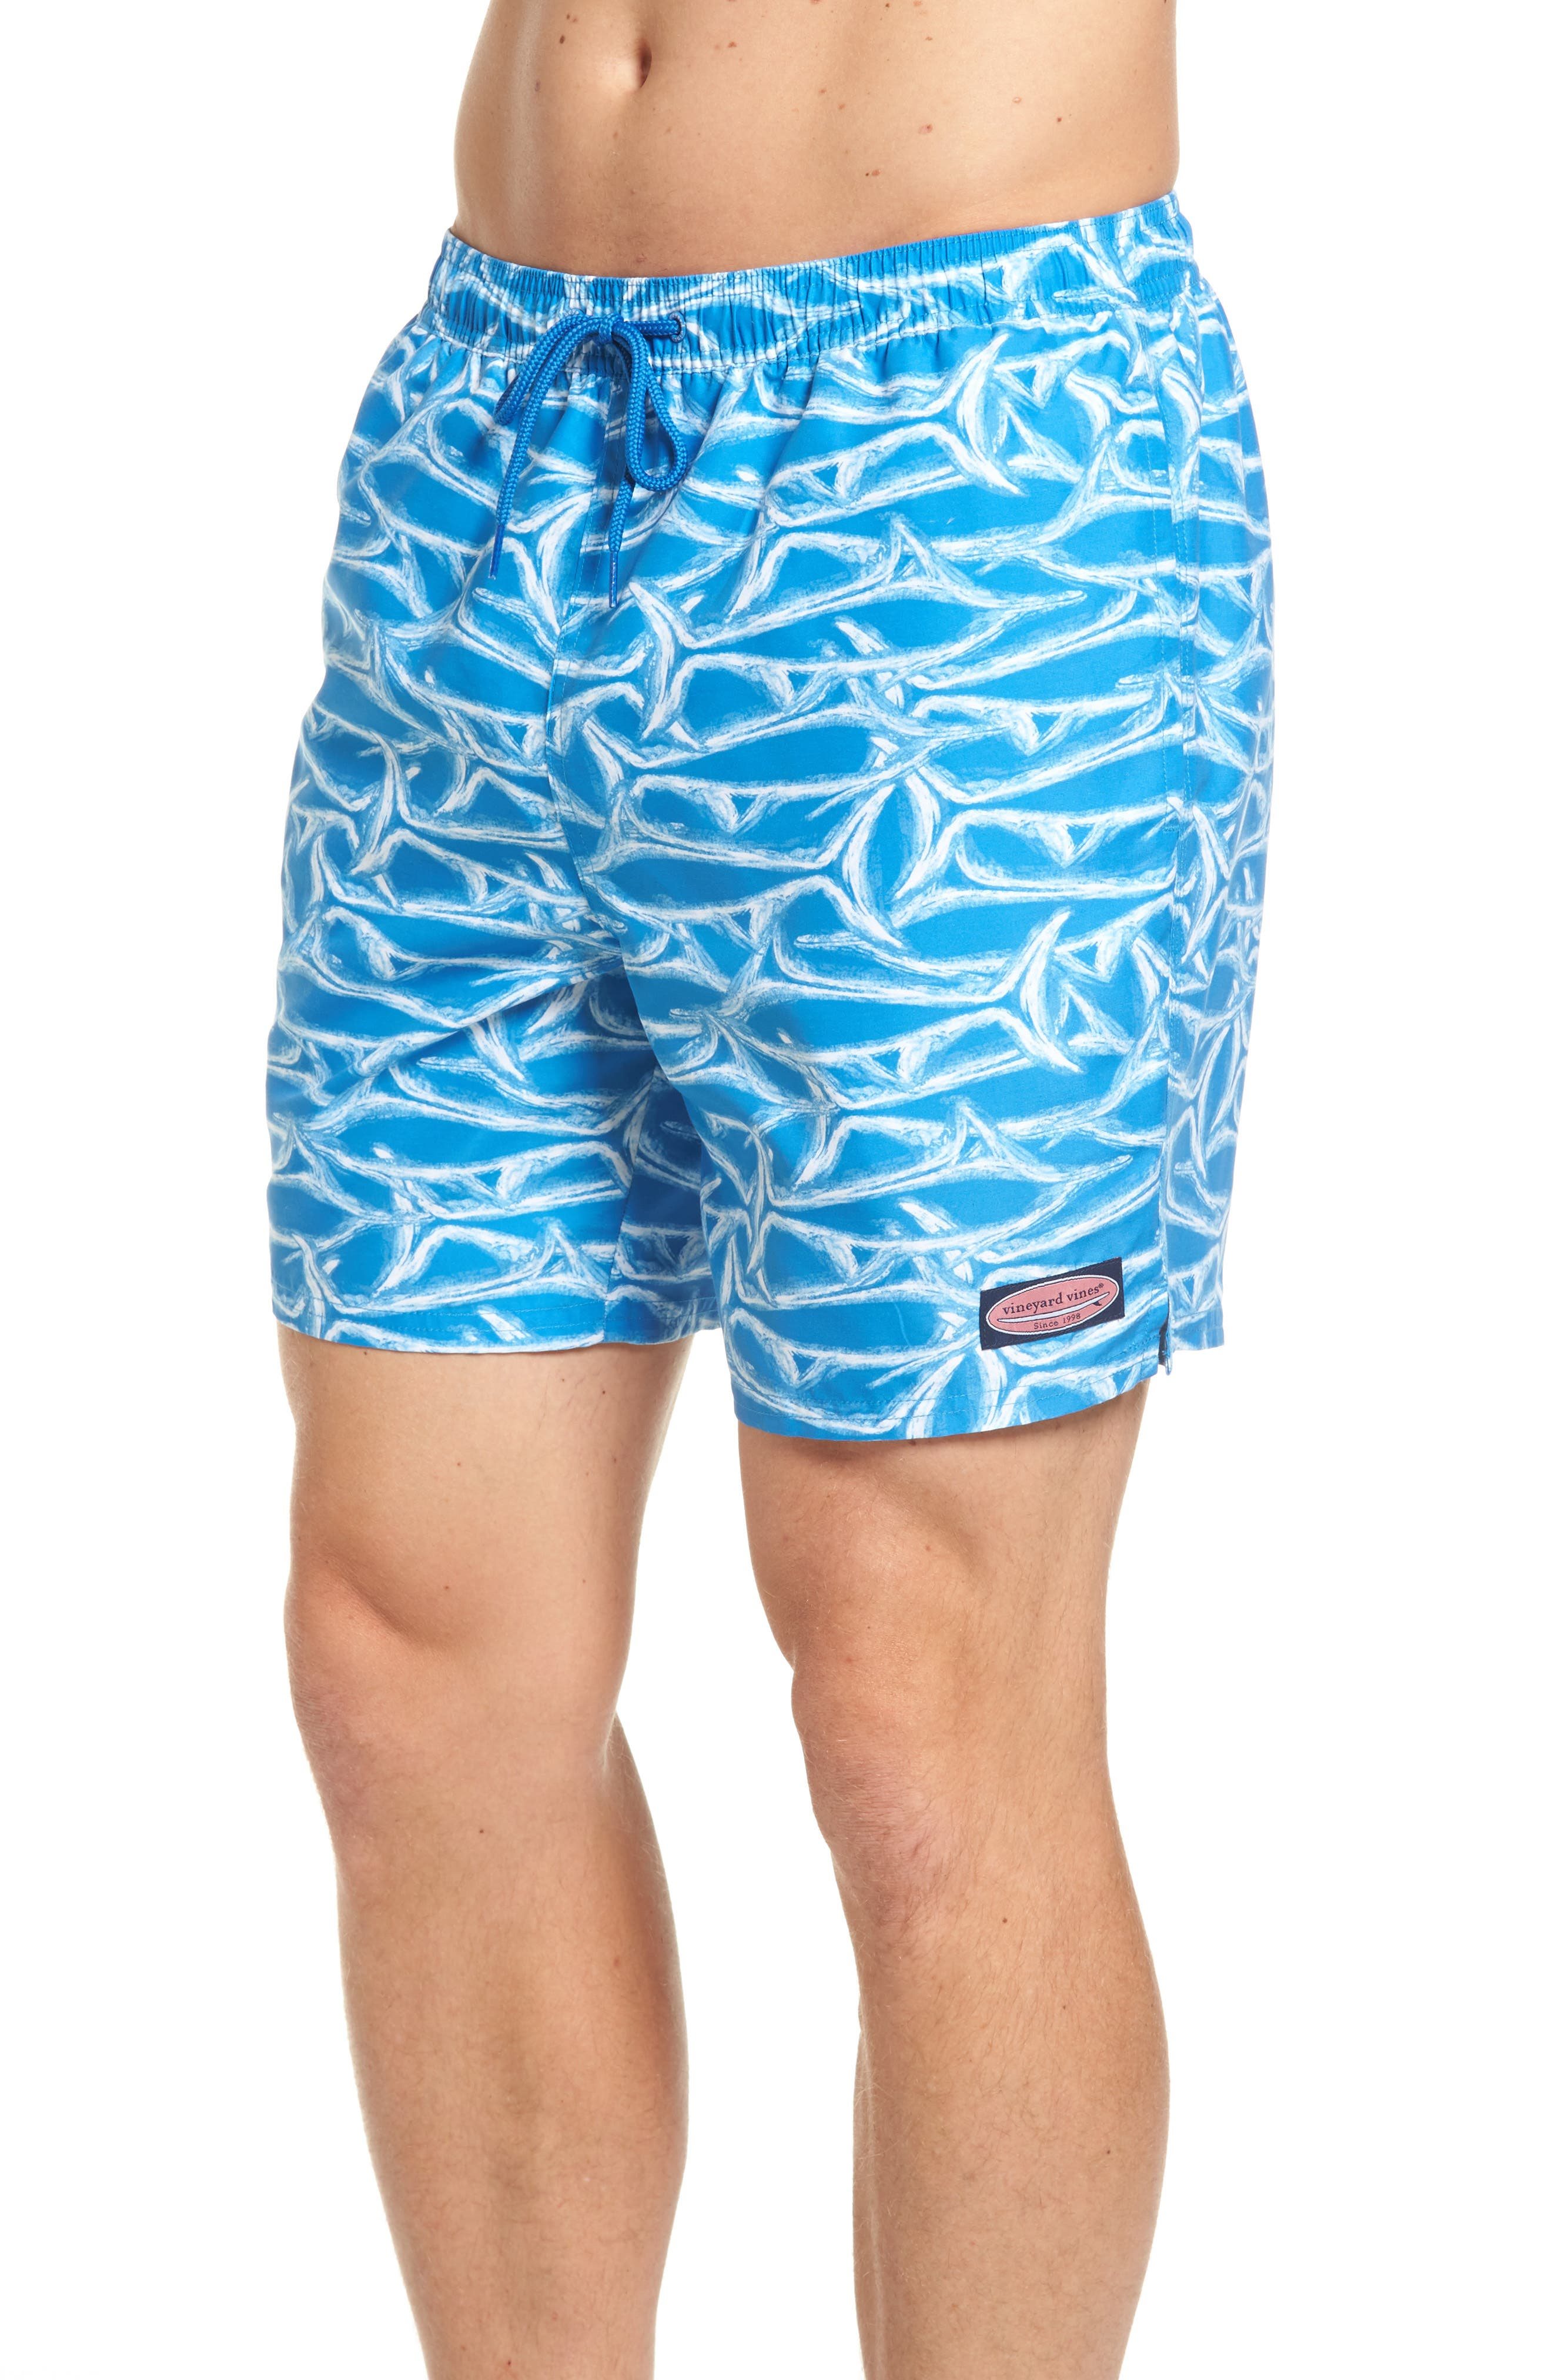 Brushed Marlin Chappy Swim Trunks,                             Alternate thumbnail 3, color,                             496